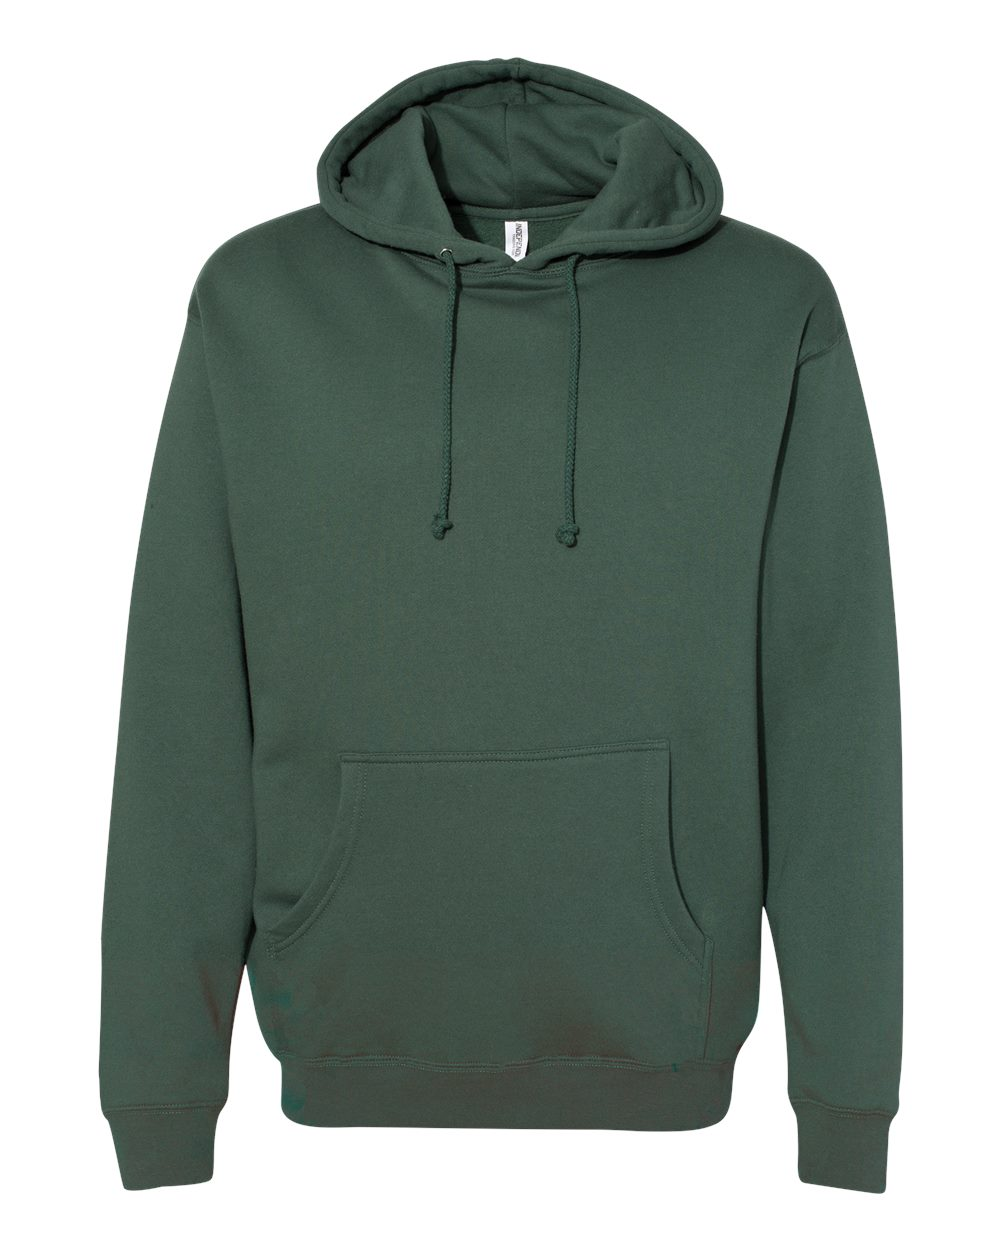 Independent-Trading-Co-Mens-Hooded-Pullover-Sweatshirt-IND4000-up-to-3XL miniature 6